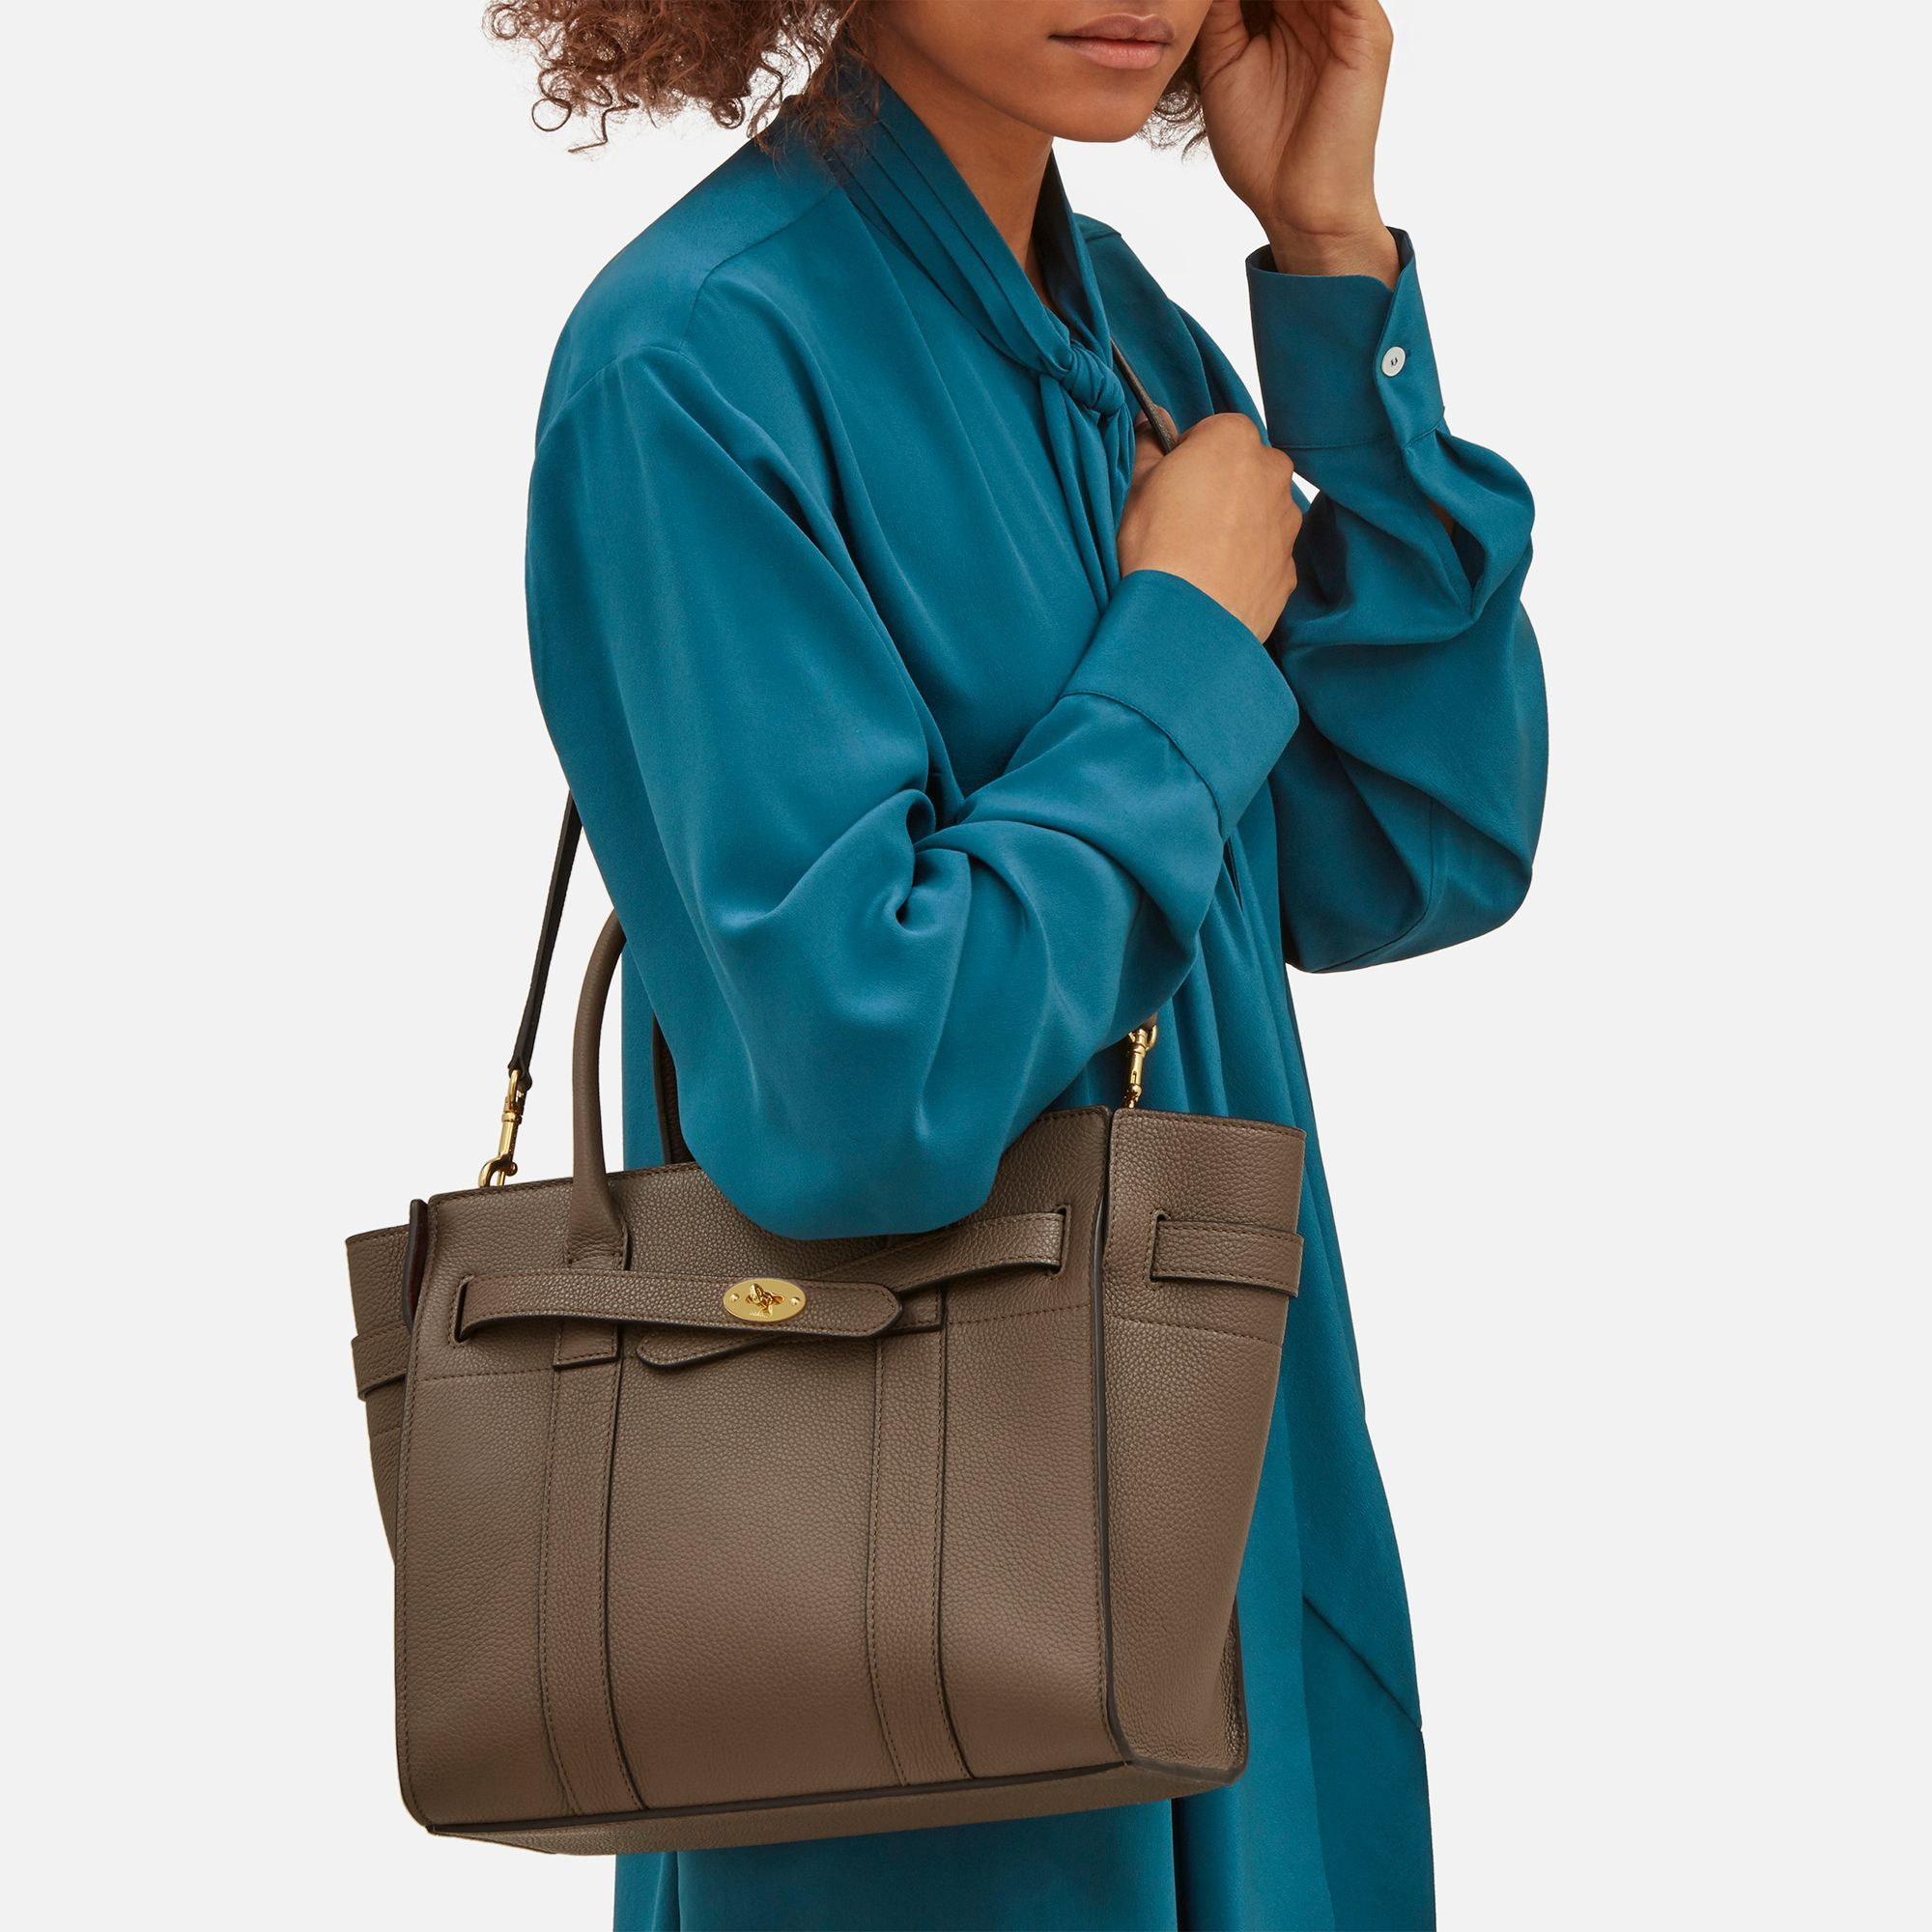 a692273c3b82 Shop the Small Zipped Bayswater in Clay Leather at Mulberry.com. The  Bayswater is